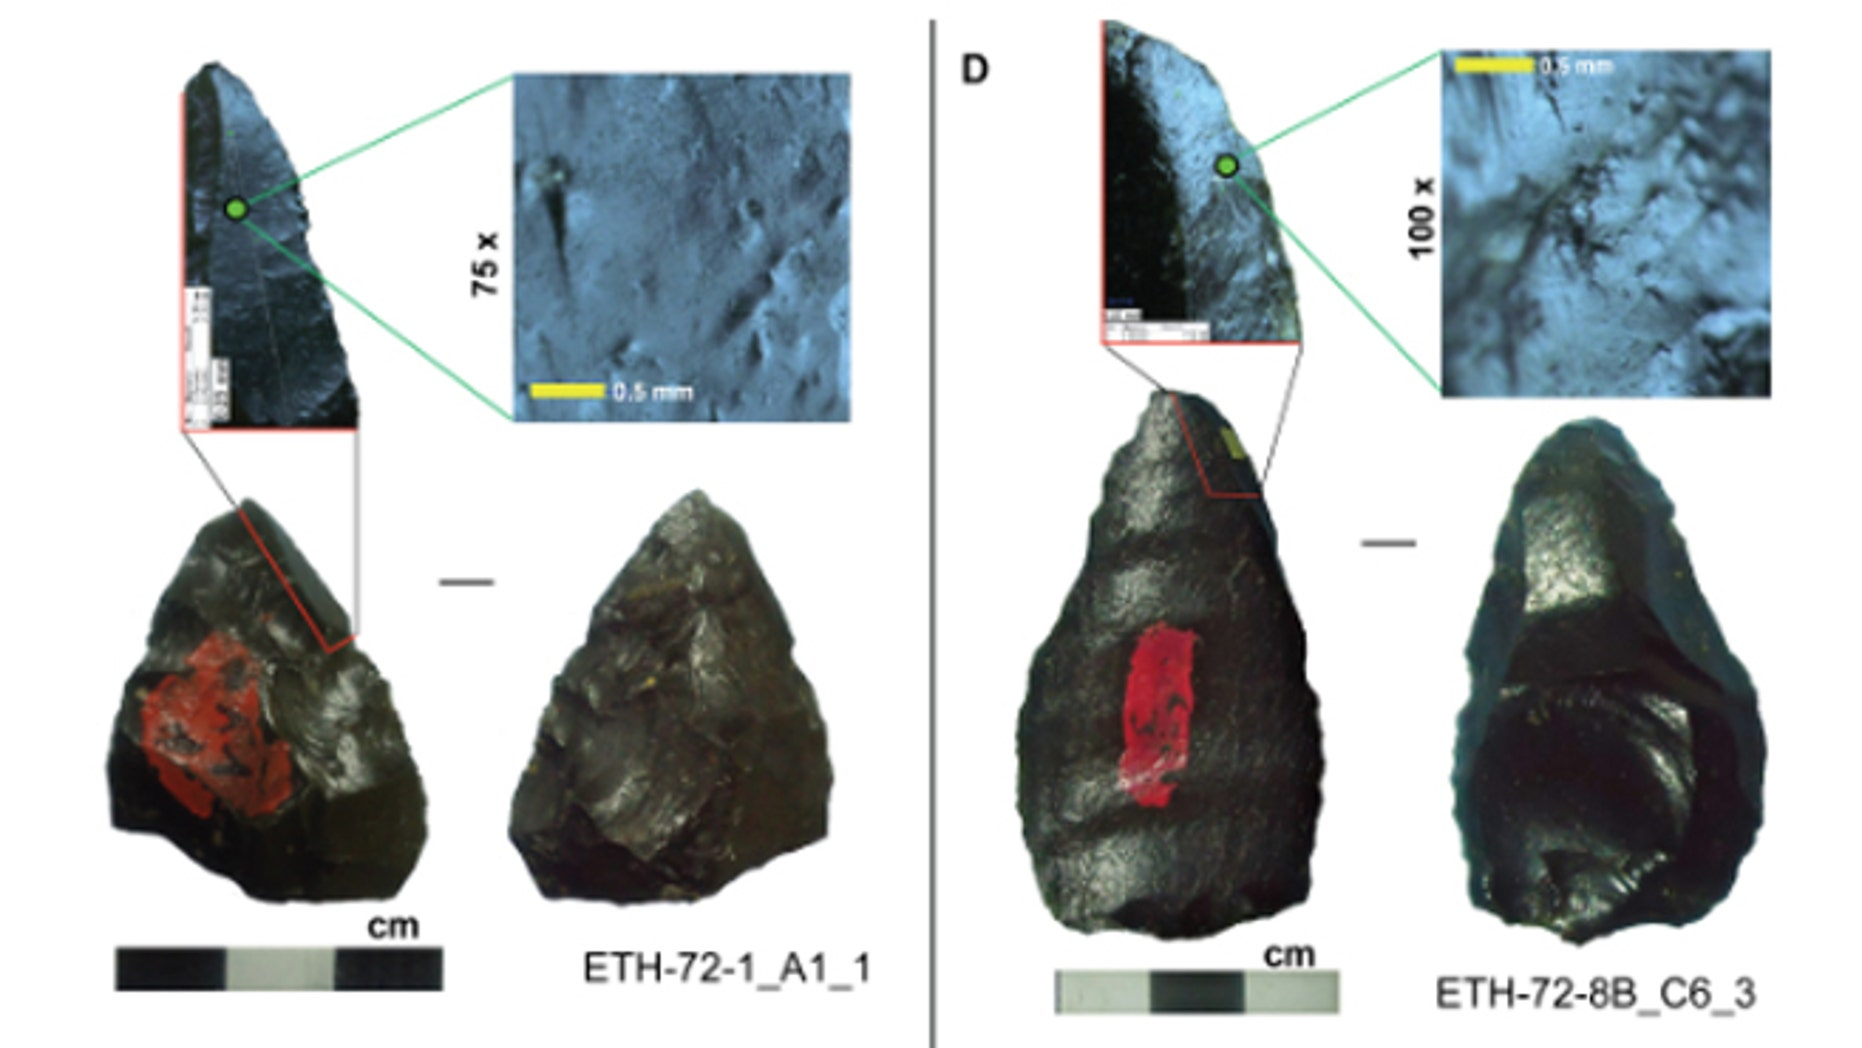 A sample of Gademotta pointed artifacts exhibiting micro- and macrofracture features indicative of projectile weaponry.